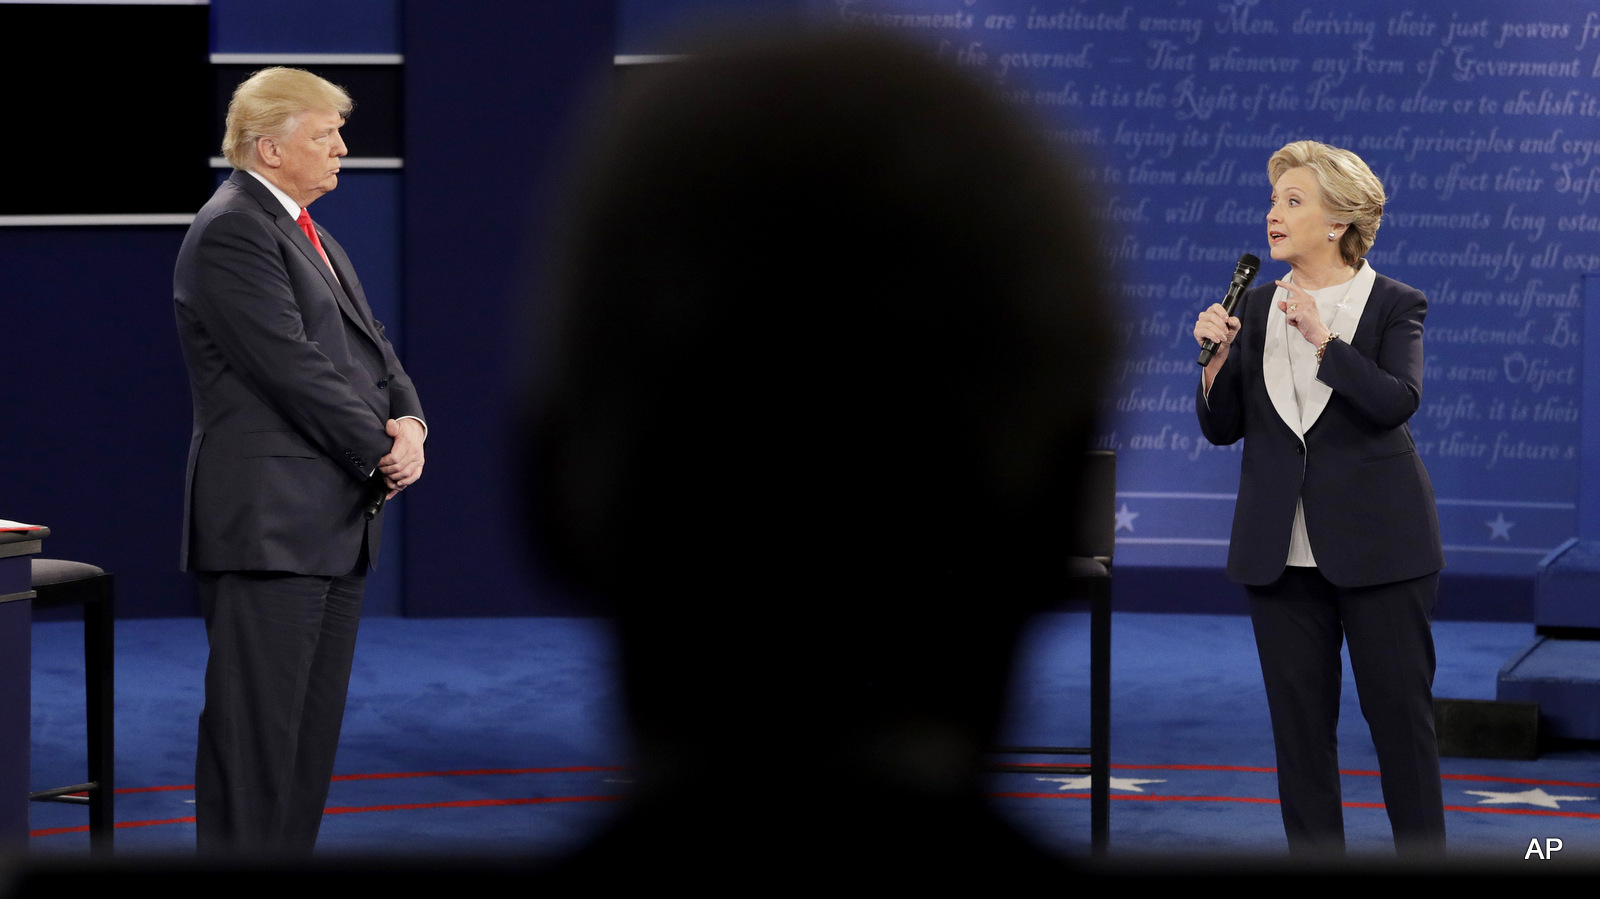 Bill Clinton, in foreground, watches the second presidential debate between Democratic presidential nominee Hillary Clinton and Republican presidential nominee Donald Trump at Washington University, Sunday, Oct. 9, 2016, in St. Louis.